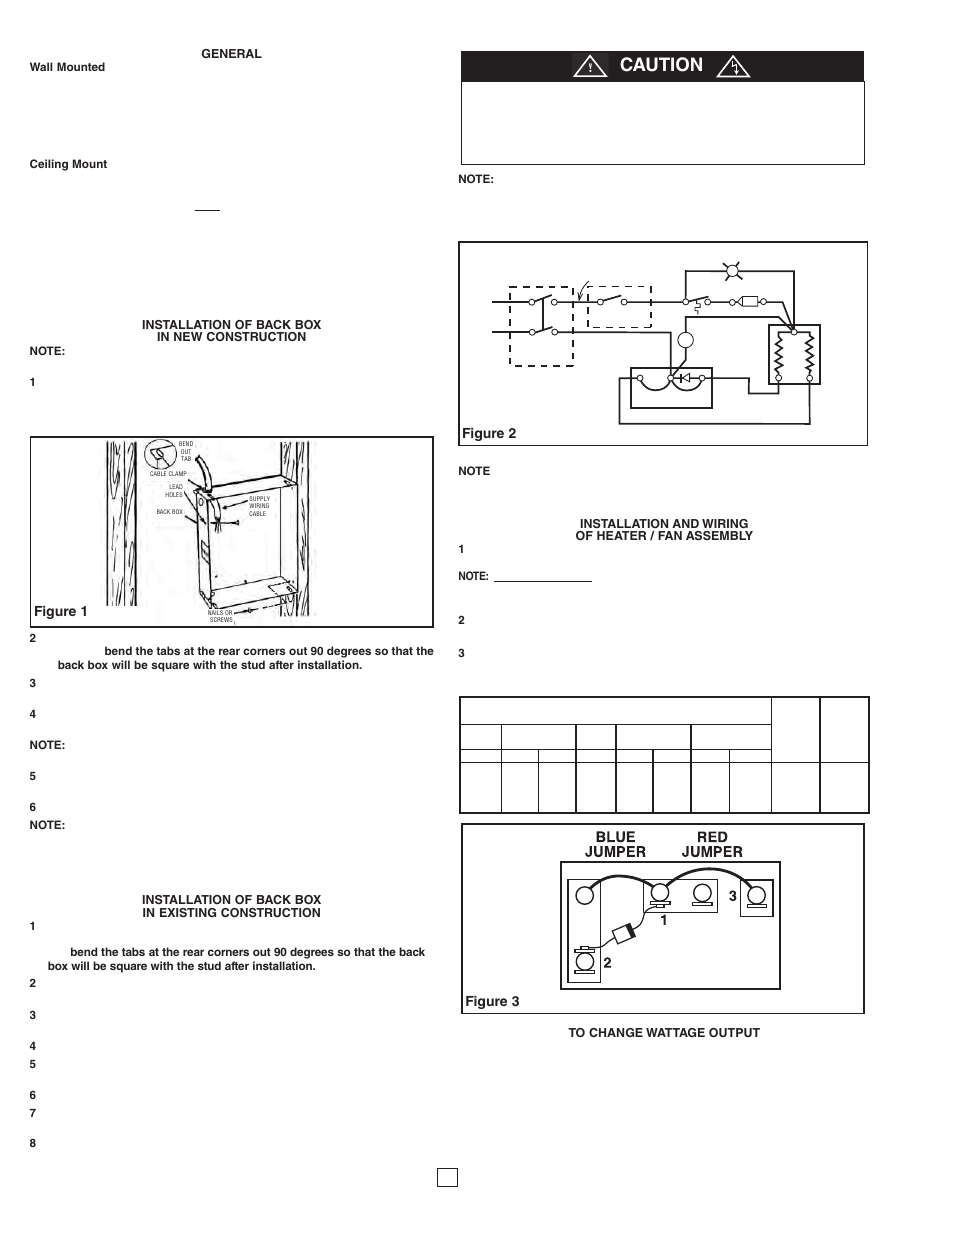 Wattage Caution Figure 1 Qmark Cra Series Residential Fan Wall Heater Wiring Diagram Forced Zonal Heaters User Manual Page 2 12